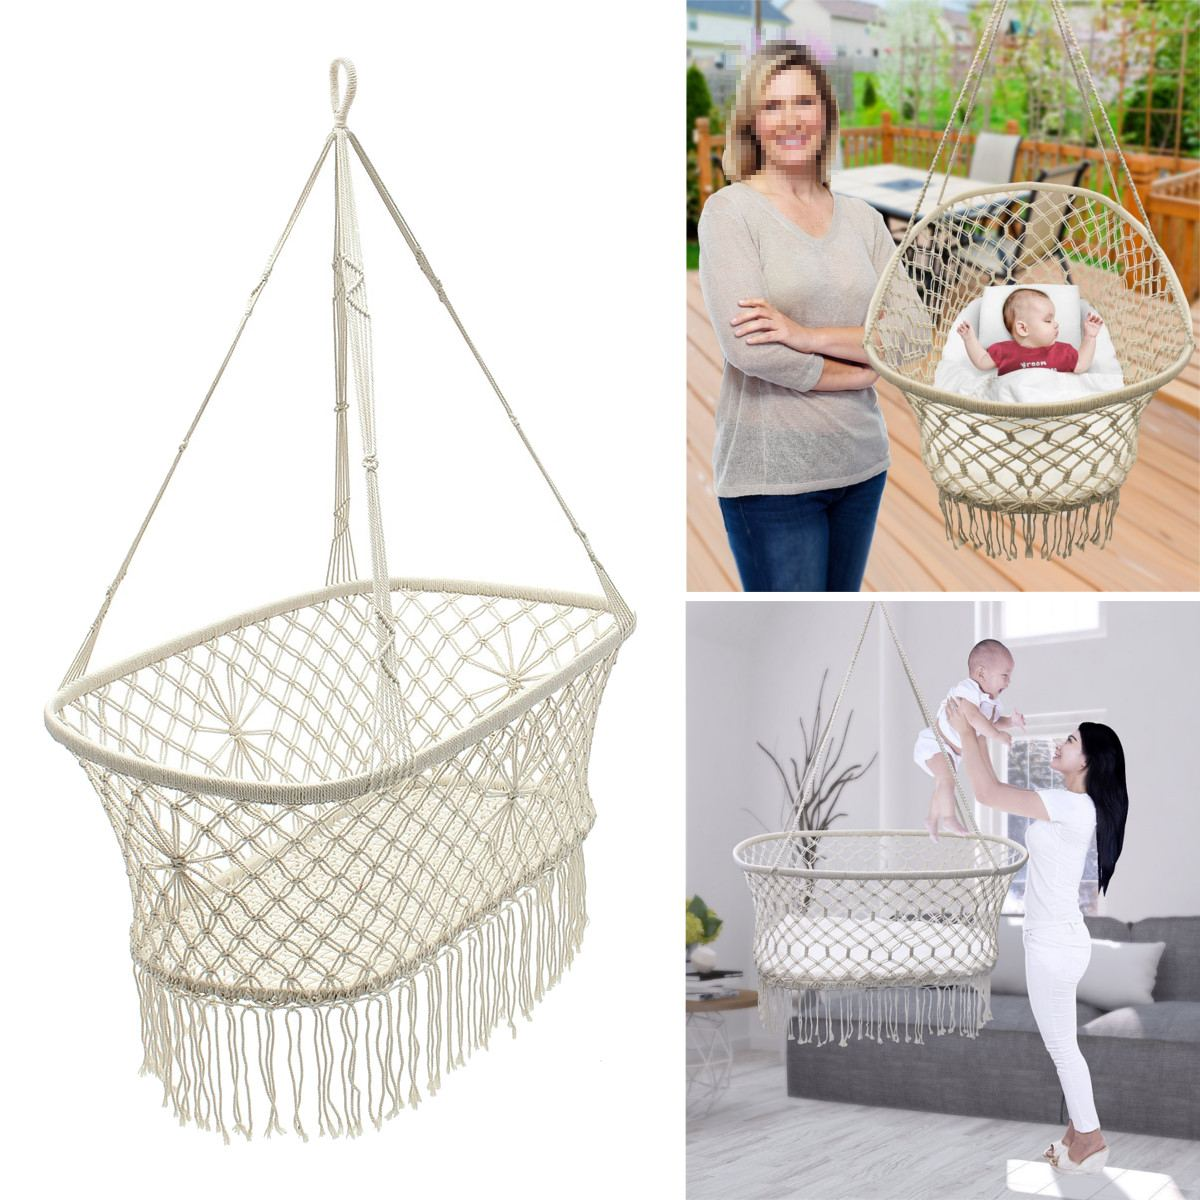 Hanging Hammock White Cotton Baby Garden Baby Cribs 90*87*57cm Woven Rope Swing Patio Chair Seat Bedding Baby Care GiftsHanging Hammock White Cotton Baby Garden Baby Cribs 90*87*57cm Woven Rope Swing Patio Chair Seat Bedding Baby Care Gifts